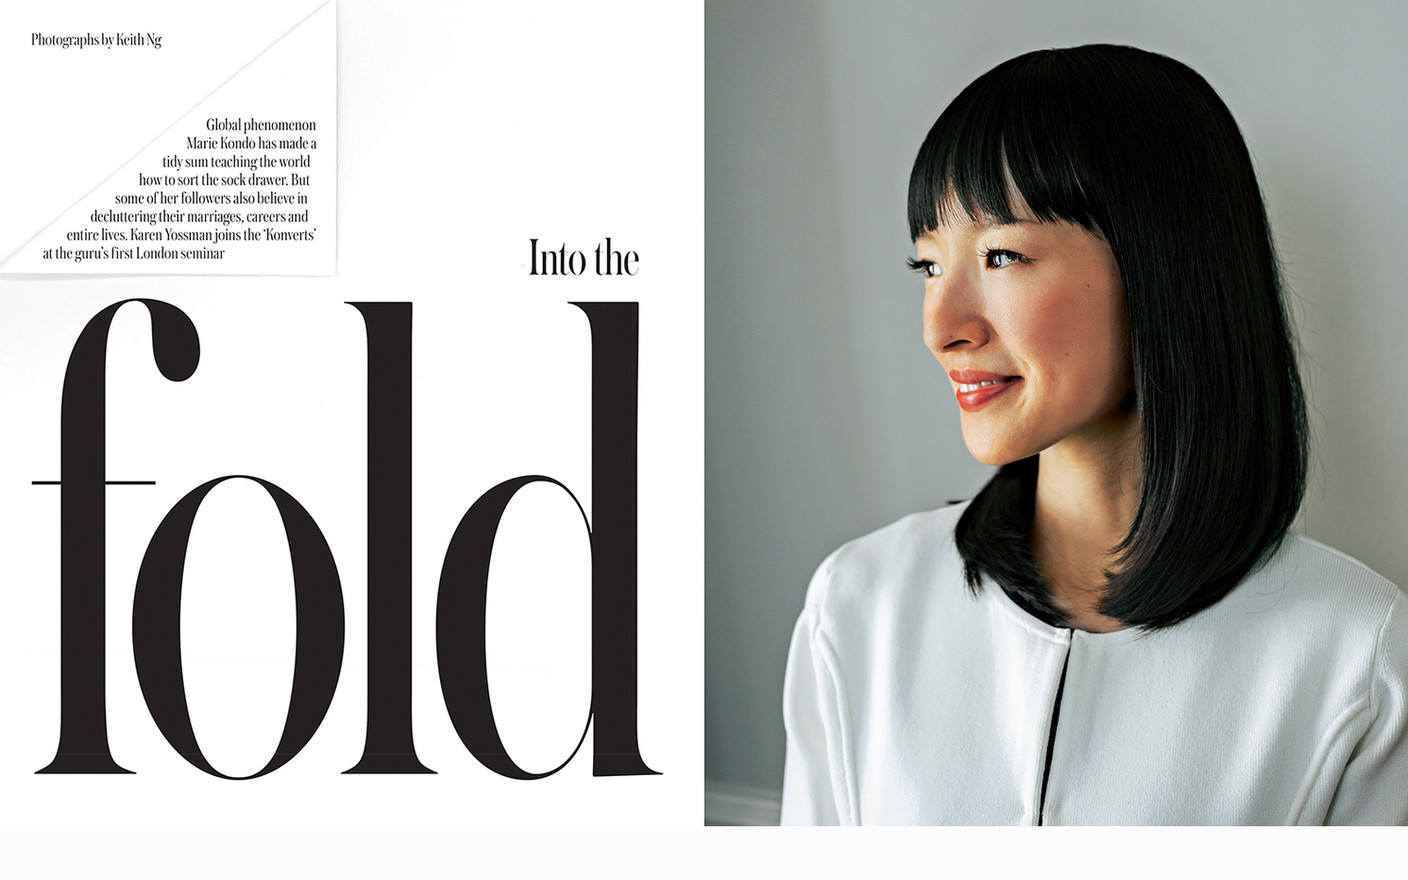 MARIE KONDO, AUTHOR & LIFESTYLE GURU